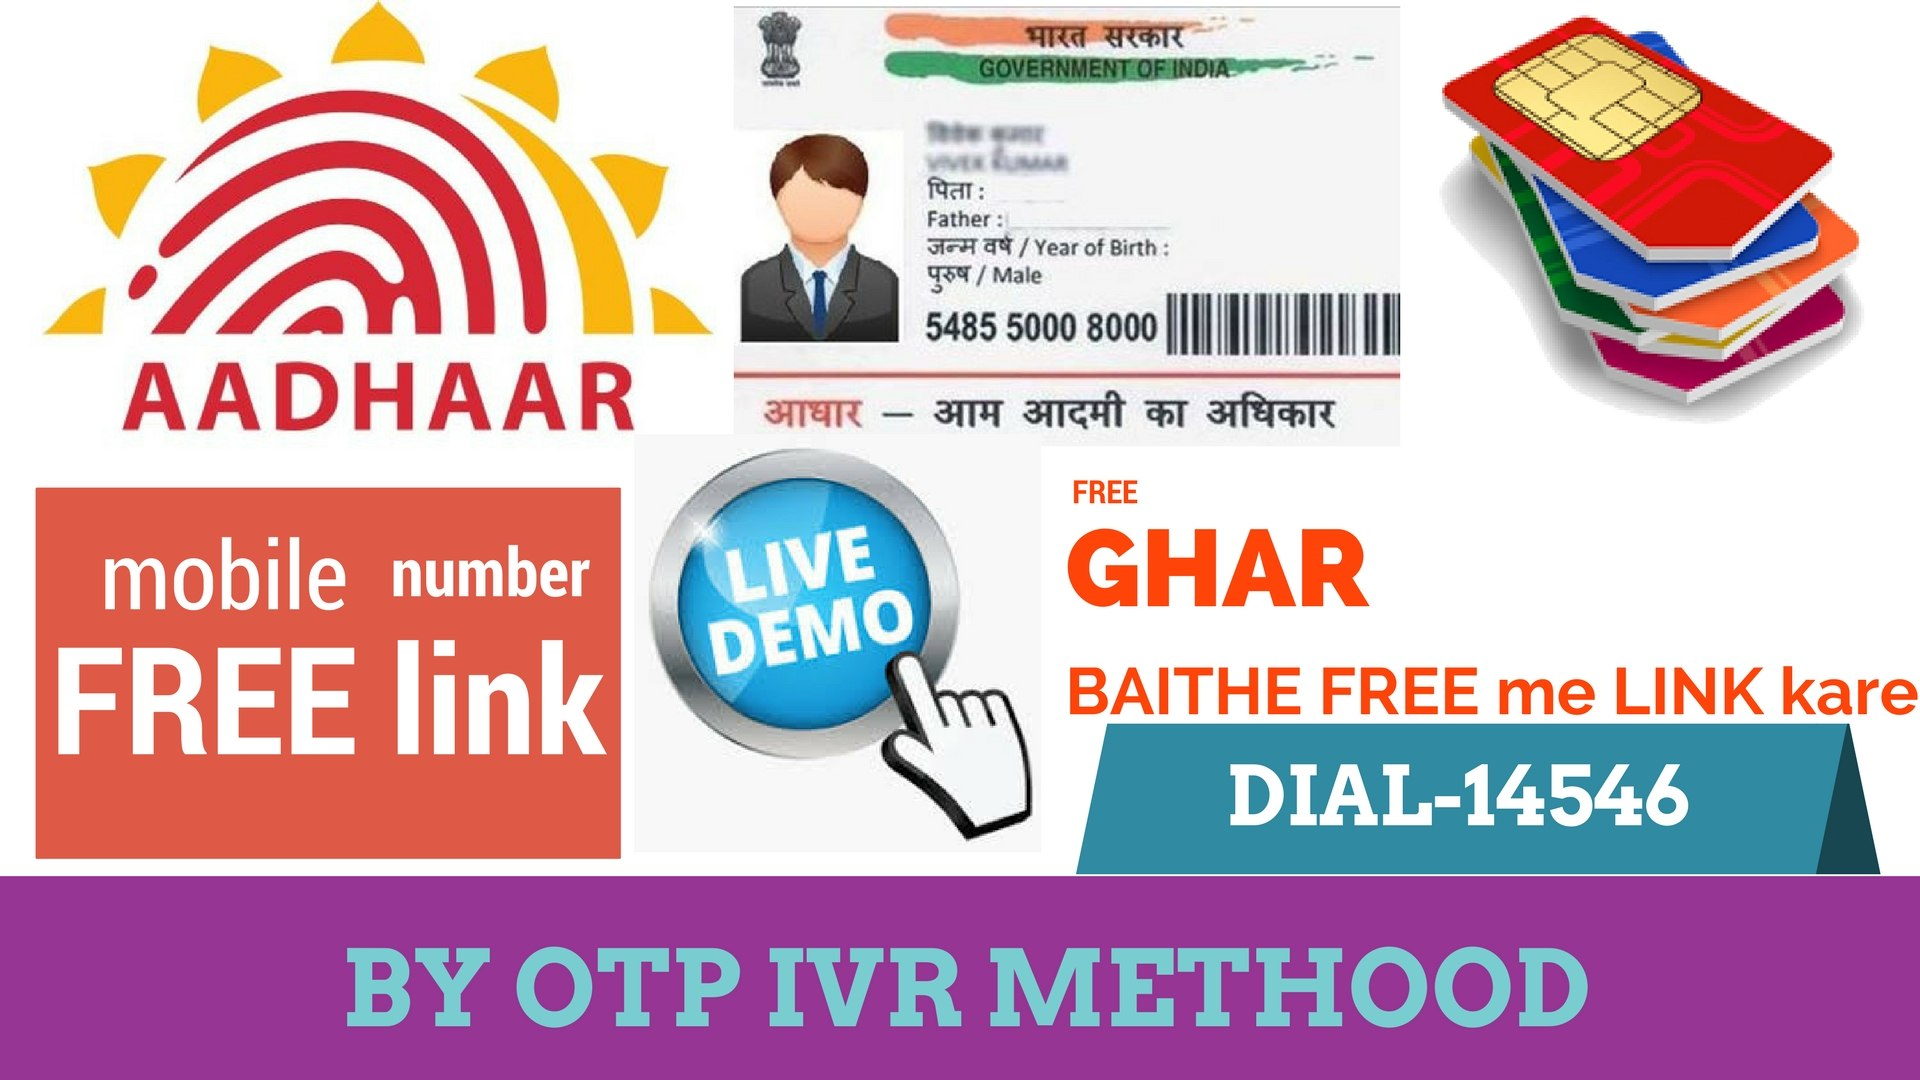 How to Link mobile Number With Aadhar Card NEW Methood - 2018 In Hindi